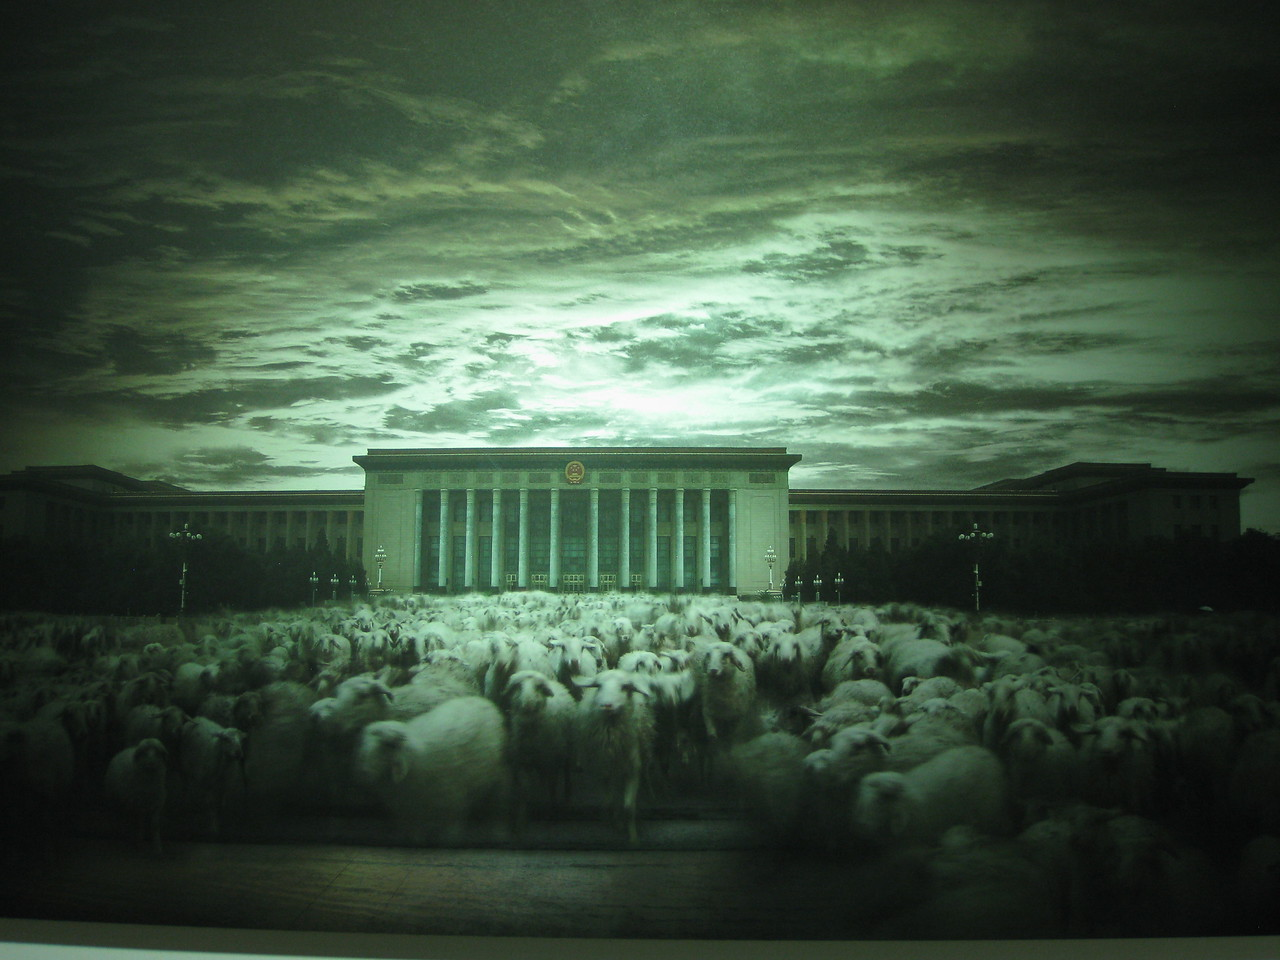 Mao's tomb & sheep. Hmmmm....